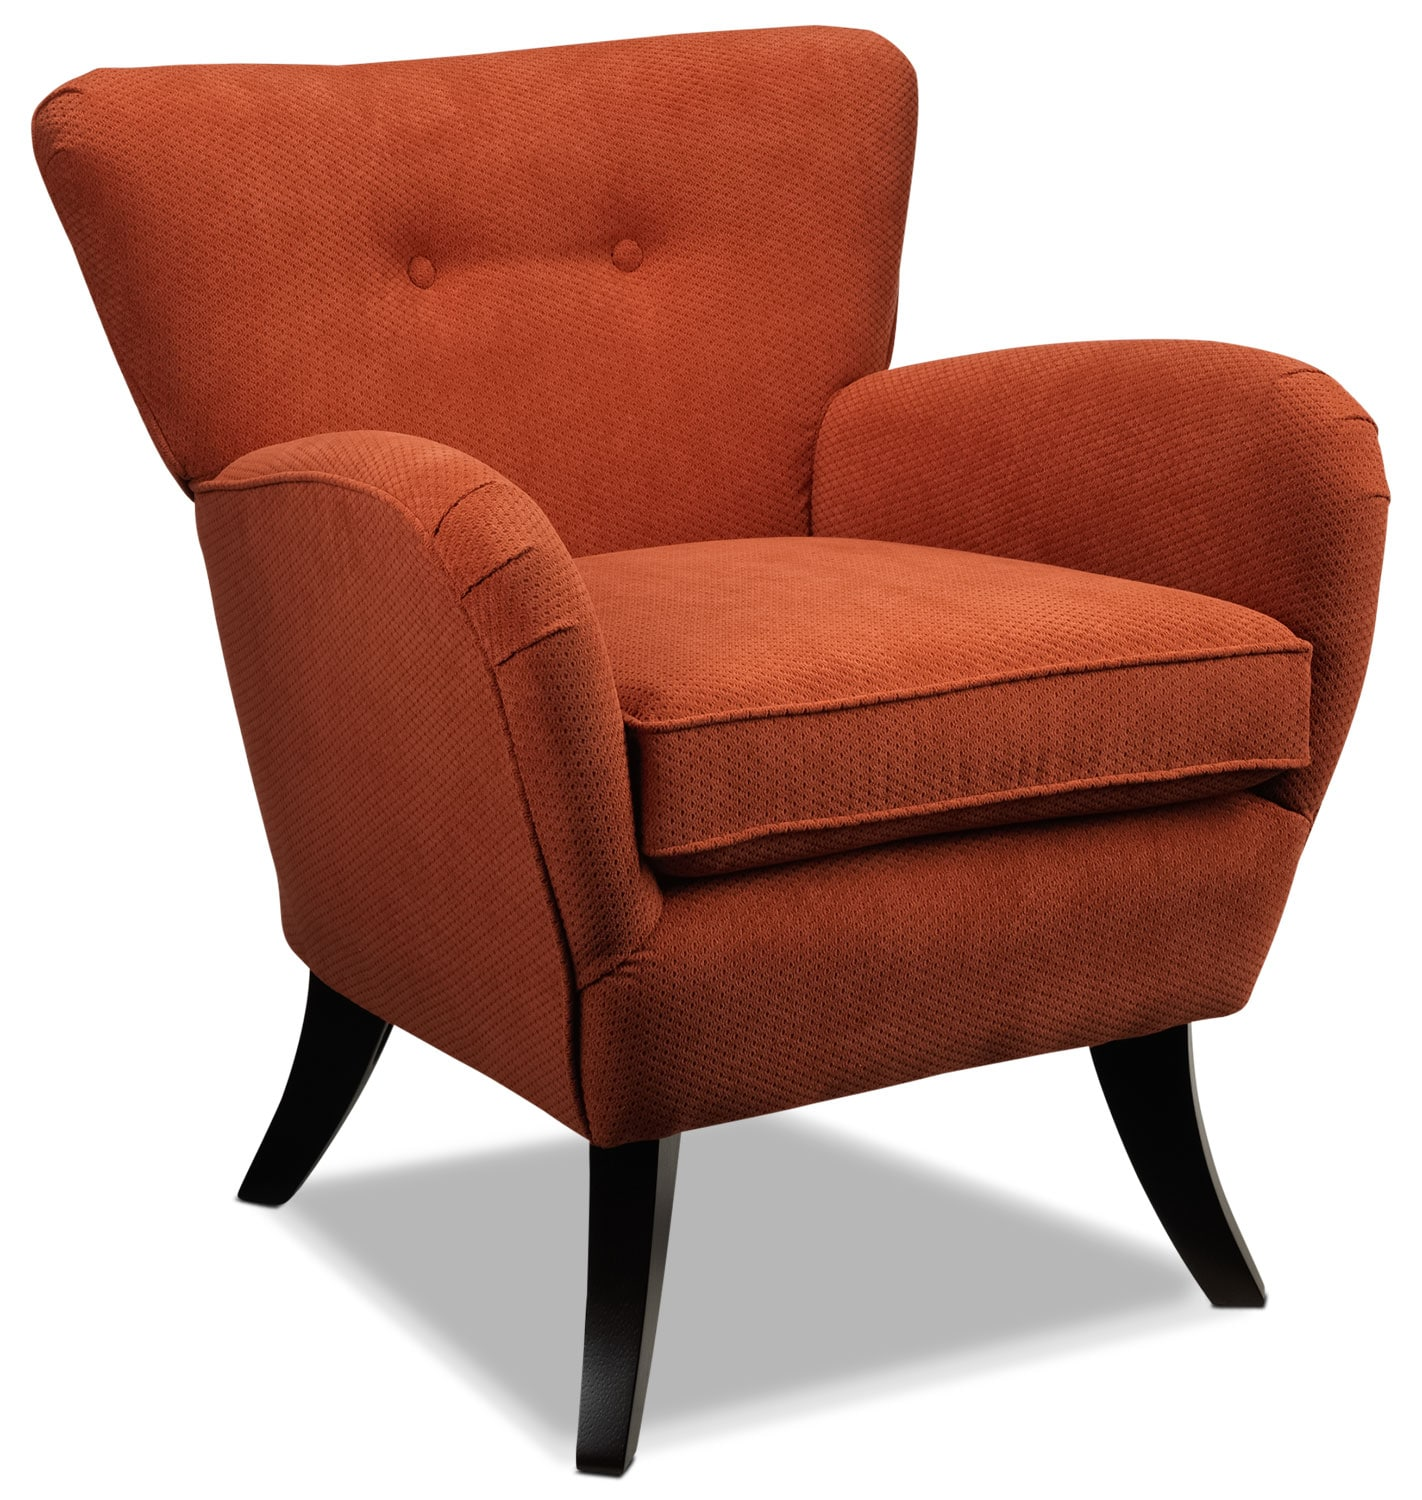 Elnora Accent Chair - Terracotta Orange